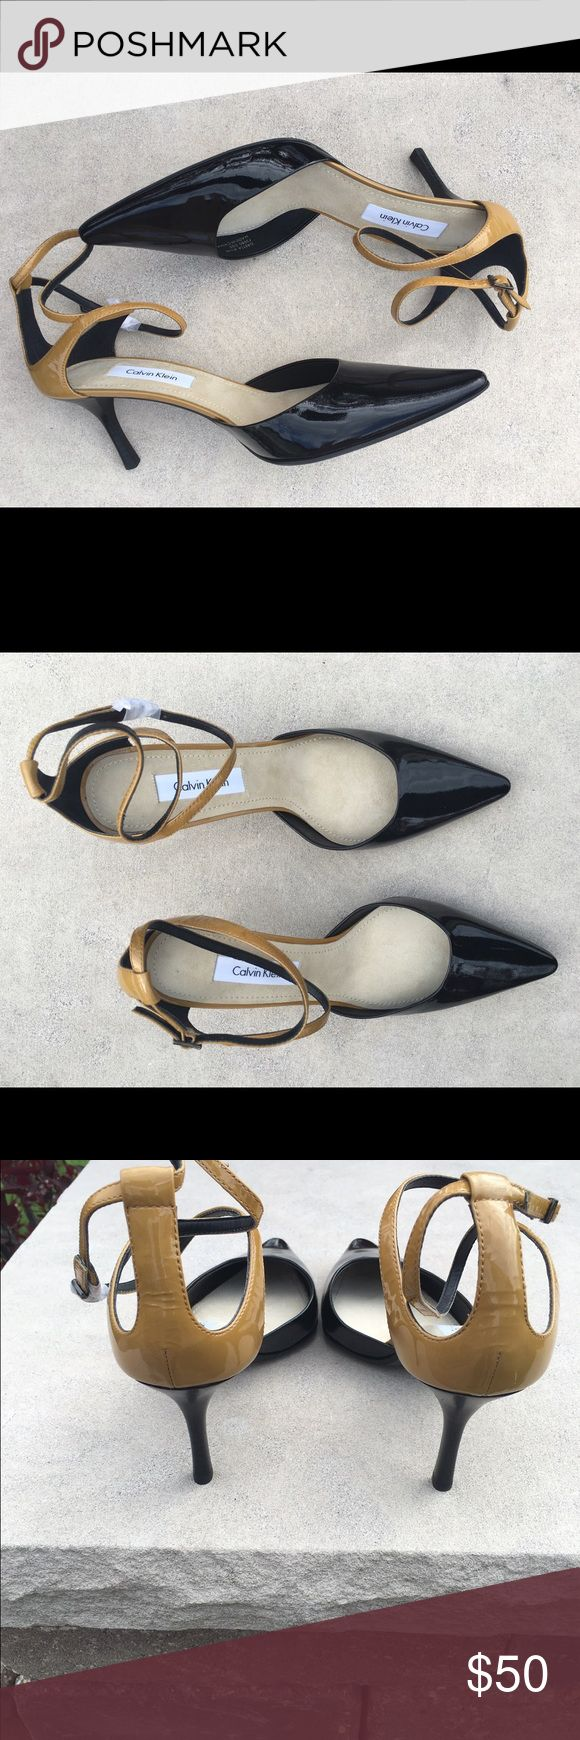 """Calvin Klein Patent Leather Ladies Pump. Top off your polished modern look in these adorable Calvin Klein black/brown patent leather pump! The color is Sandstorm/Black.  Heel height is approximately 2 1/2"""".  Never worn. Calvin Klein Shoes Heels"""